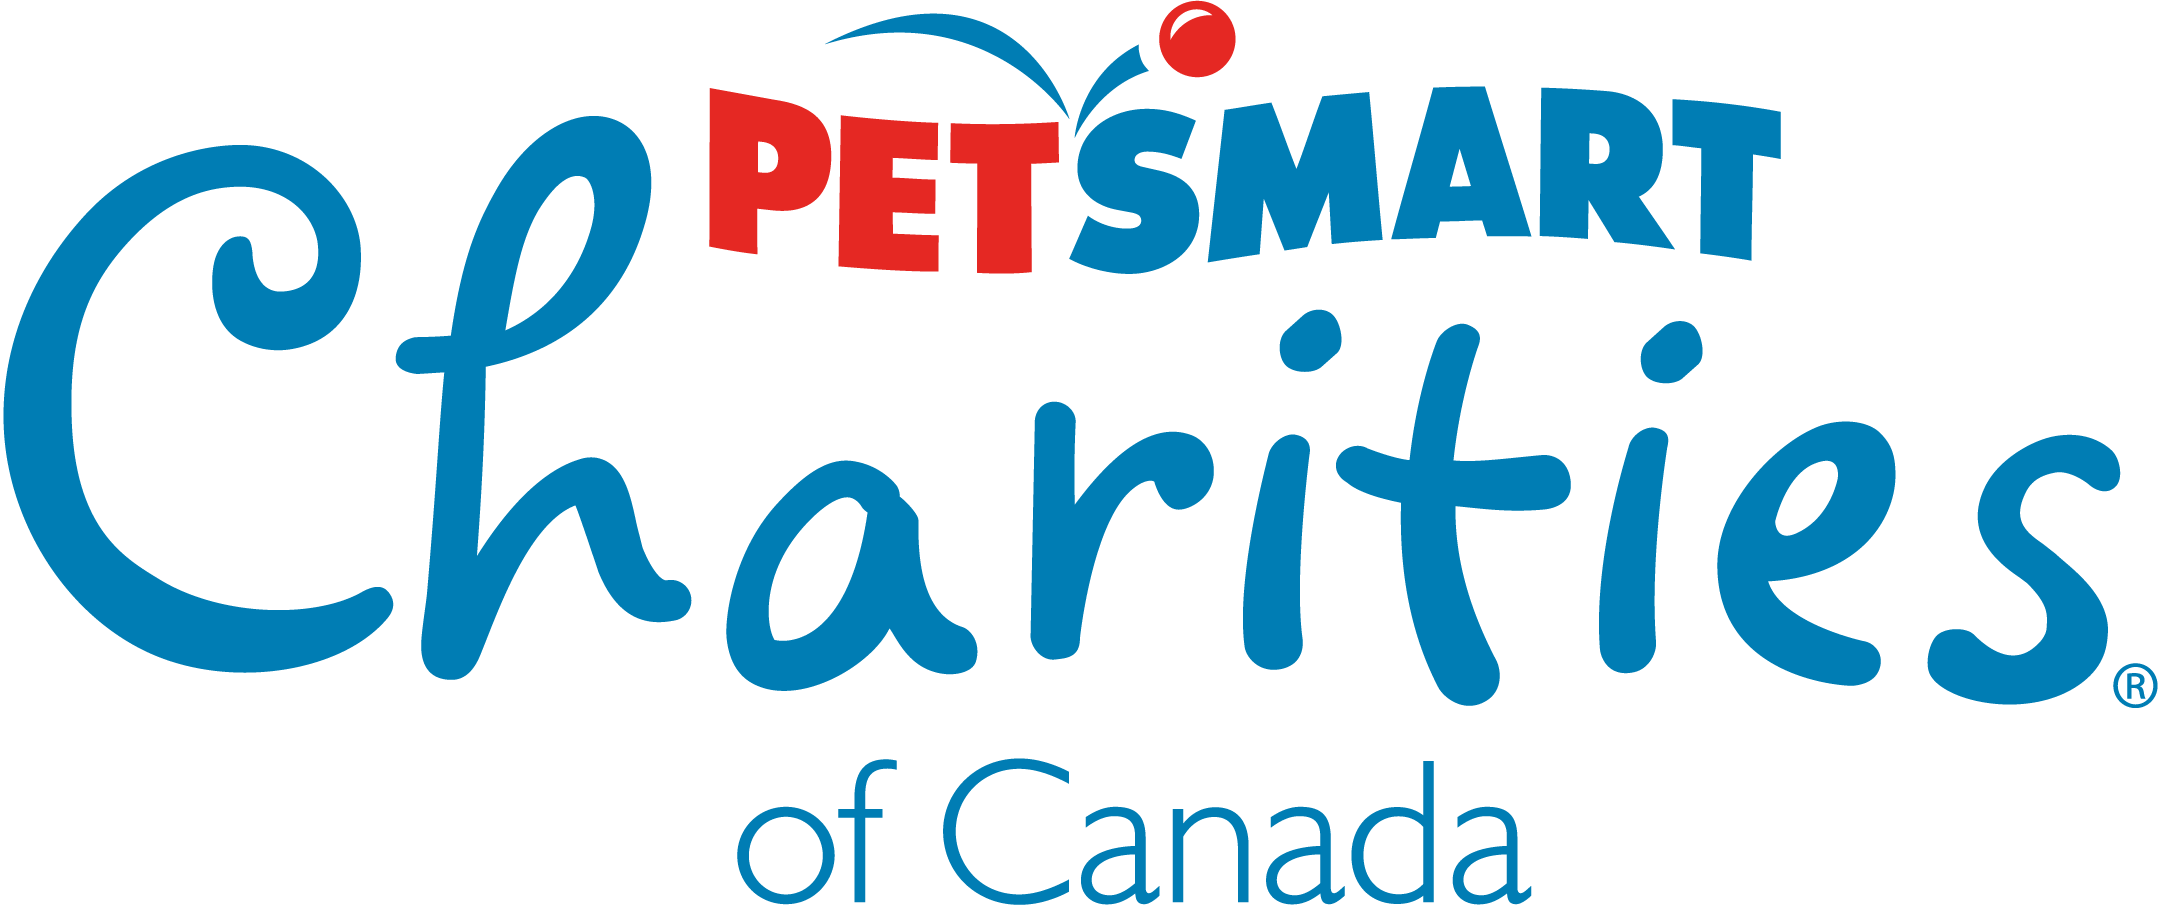 Commanditaire PetSmart Charities